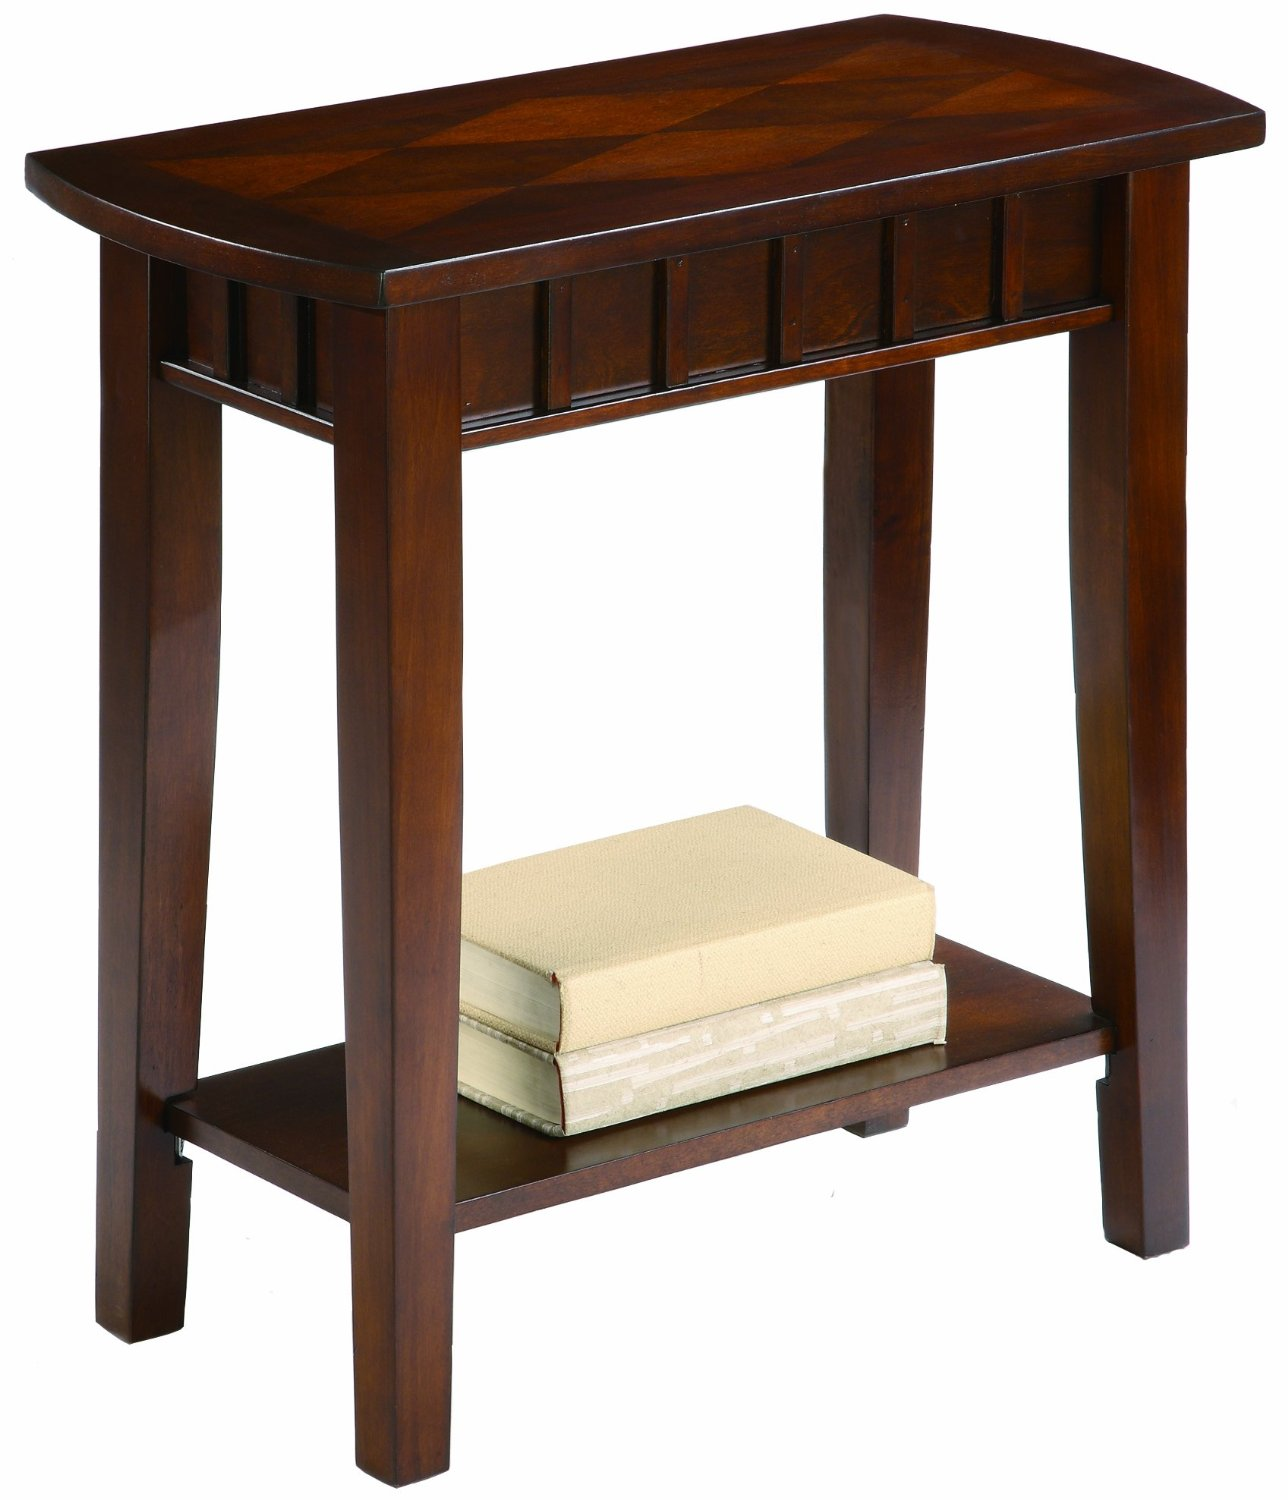 Tall console tables homesfeed for Small tall end table